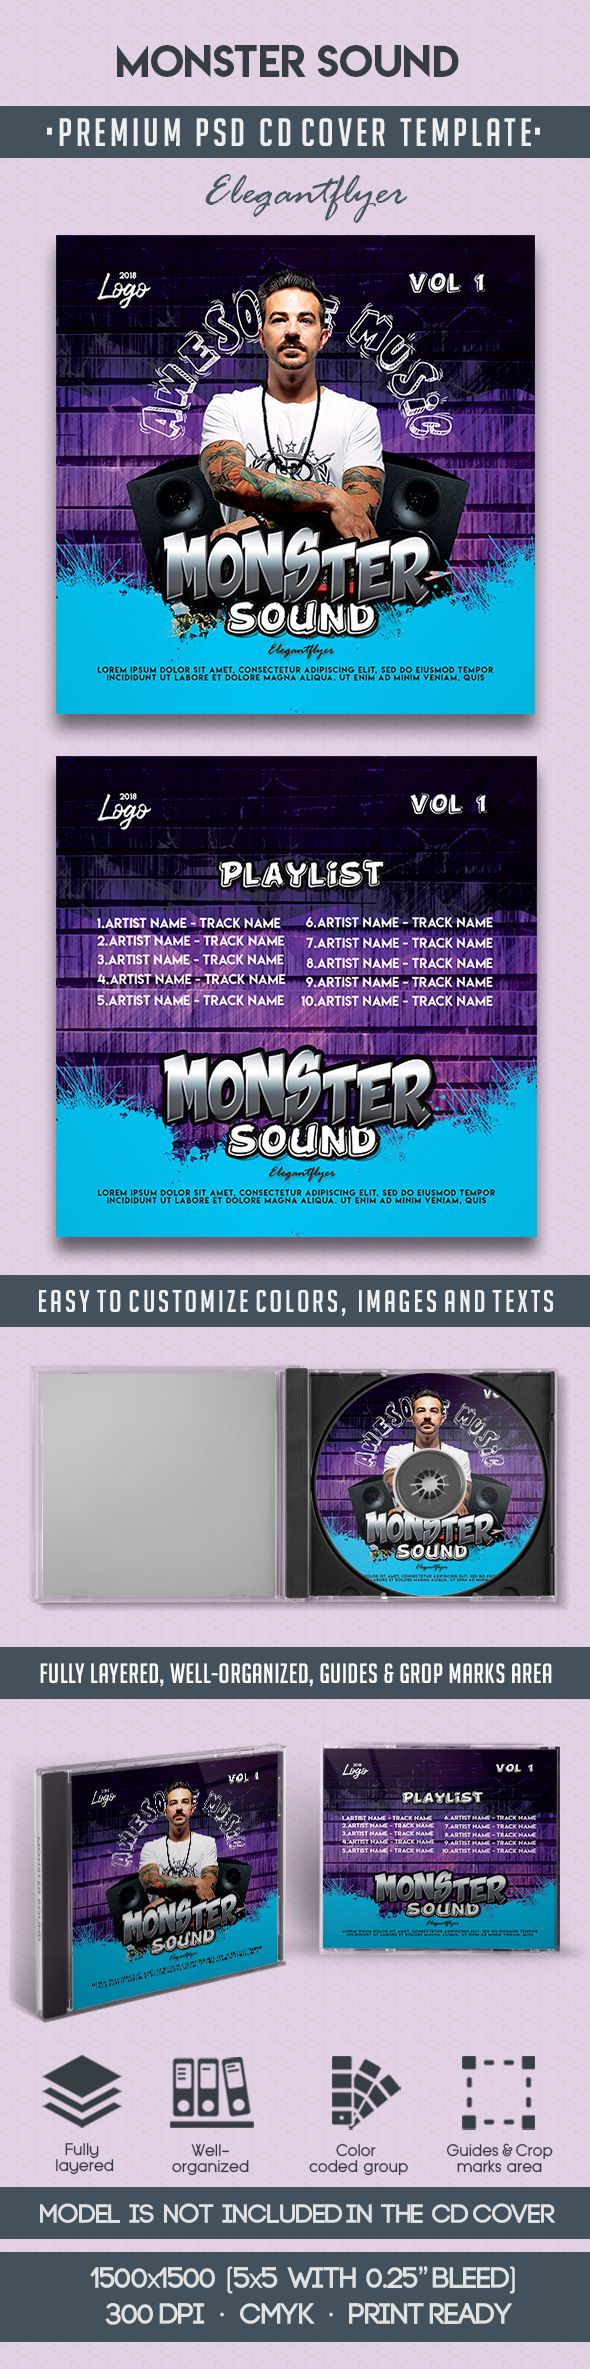 Monster Sound – Premium CD Cover PSD Template